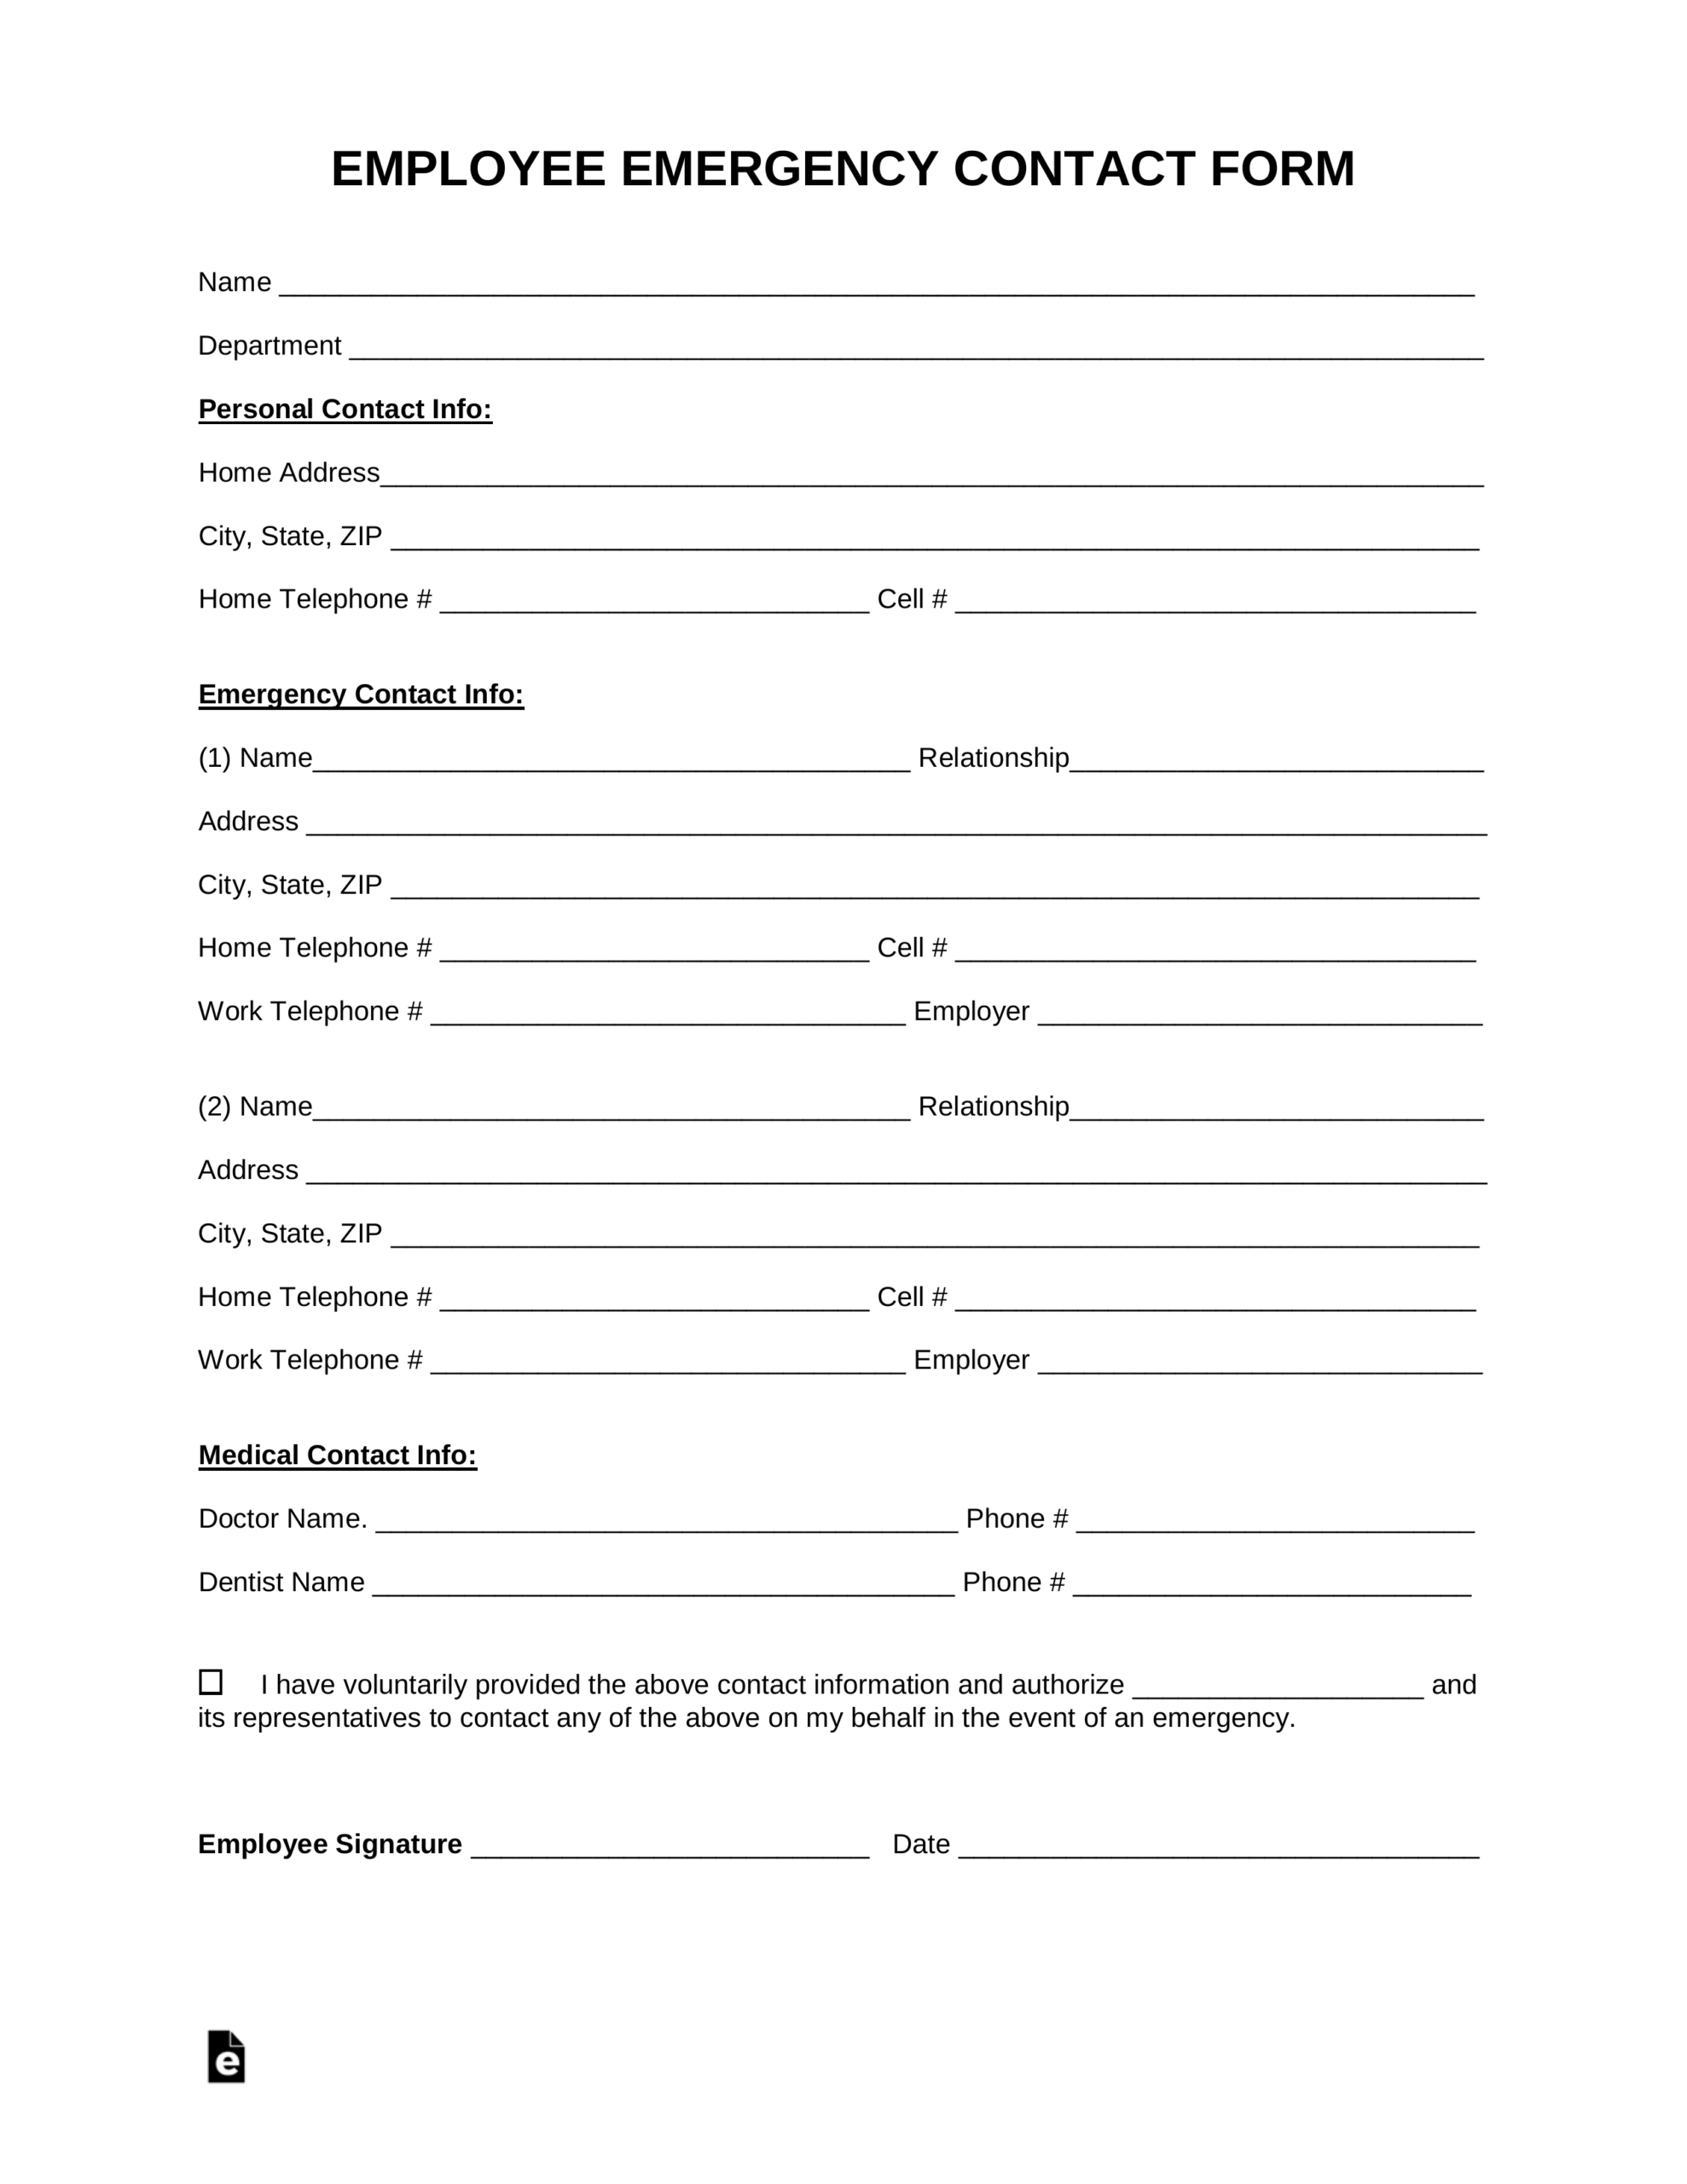 Emergency Contact Form Word Doc - Tunu.redmini.co Throughout Employee Card Template Word